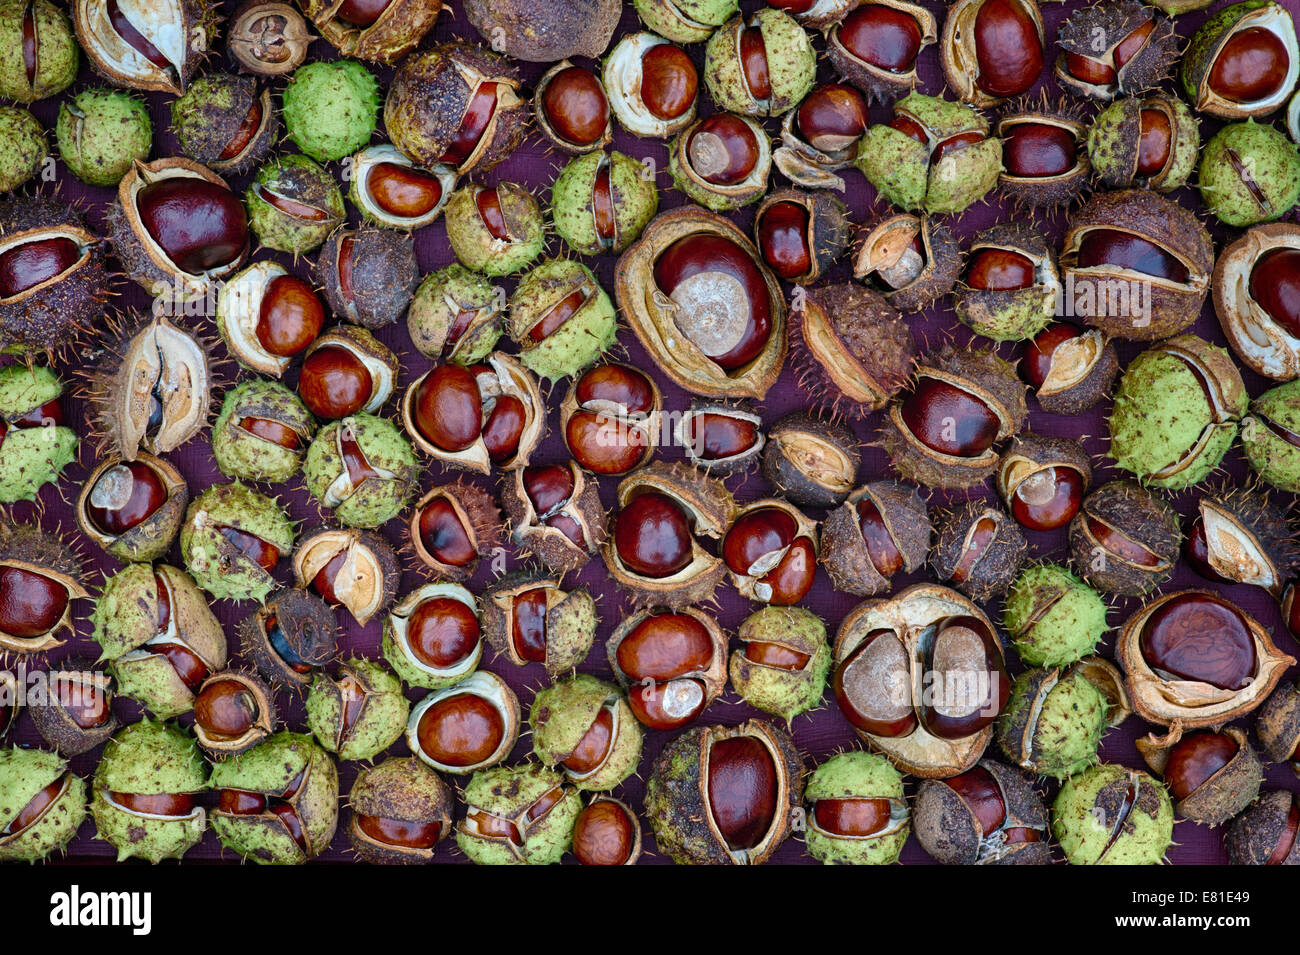 Aesculus Hippocastanum seed. Horse chestnuts. Conkers pattern. - Stock Image